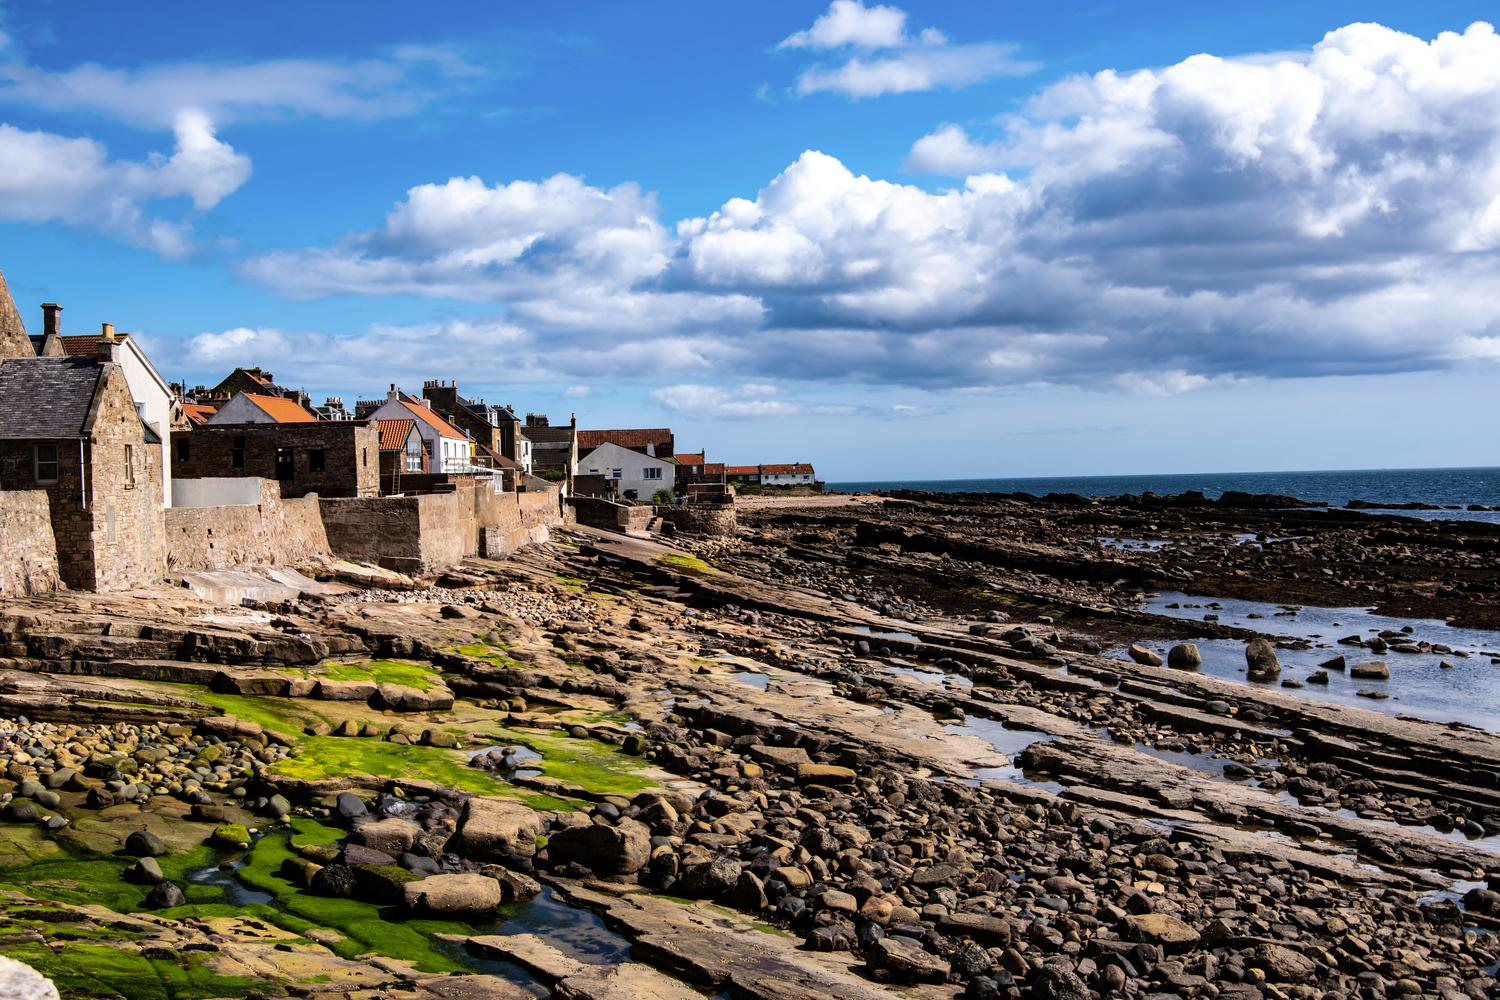 Fife Coastal Path Short Break Self Guided Walking Holiday